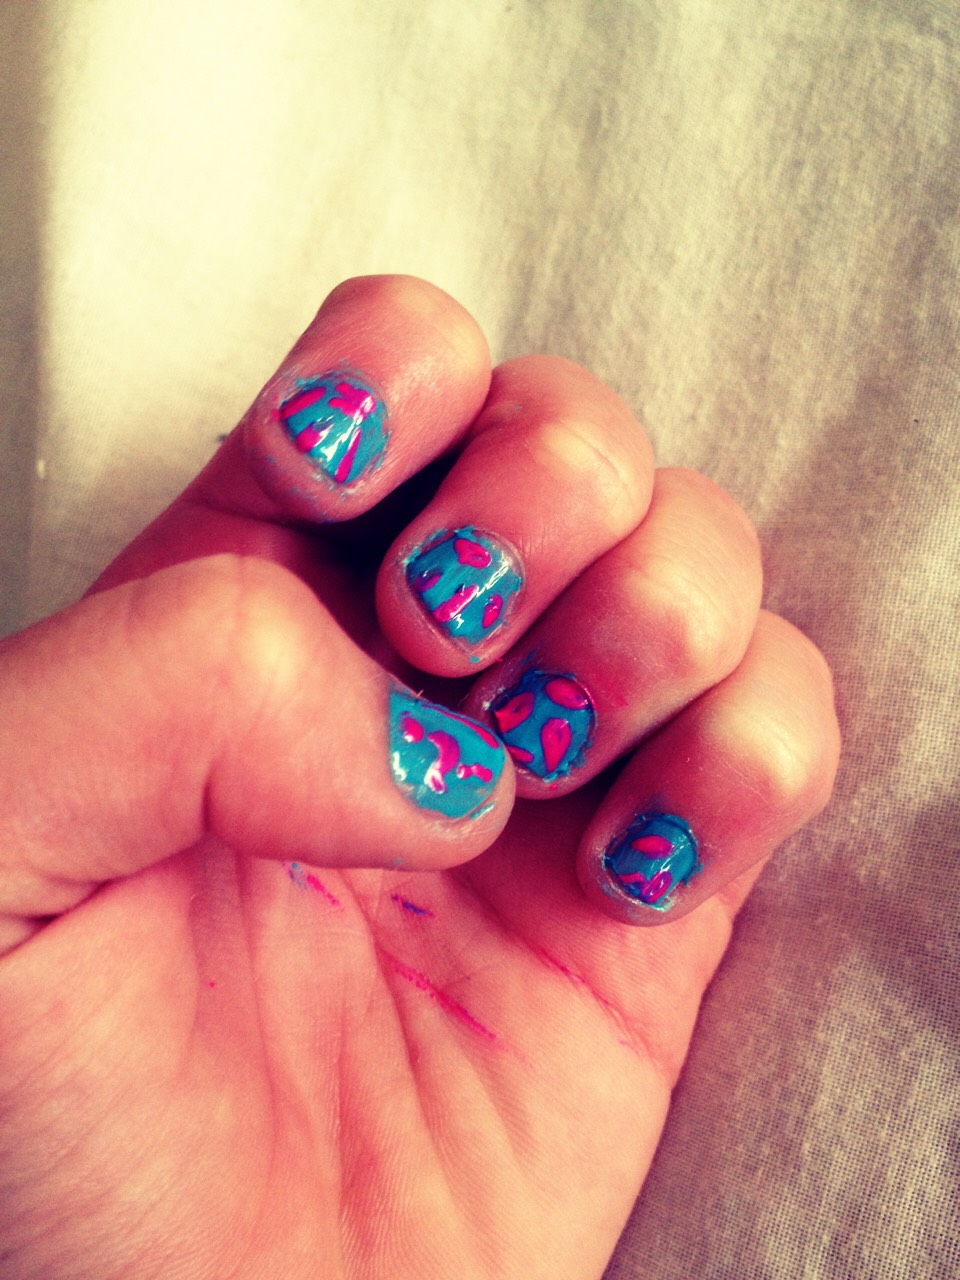 Here is the way to make these striped pink and blue nail design